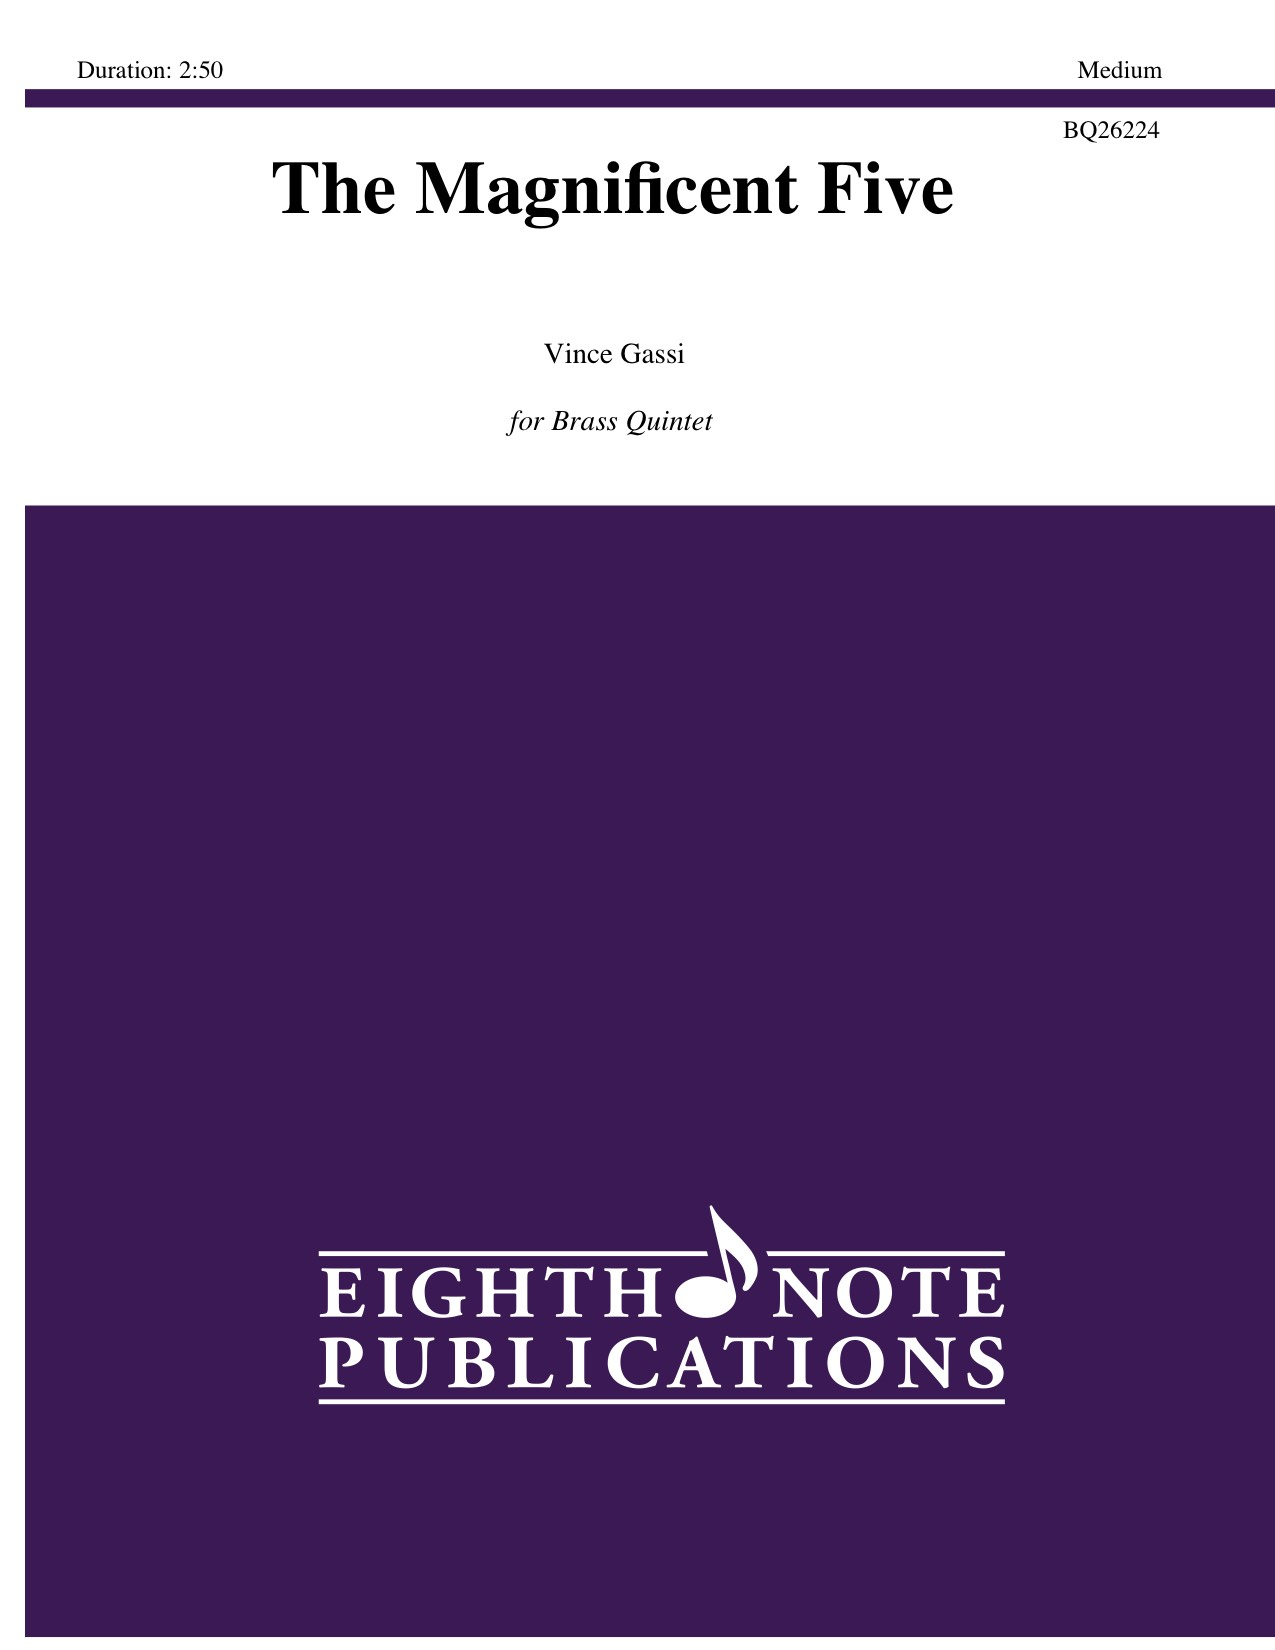 Magnificent Five, The - Vince Gassi